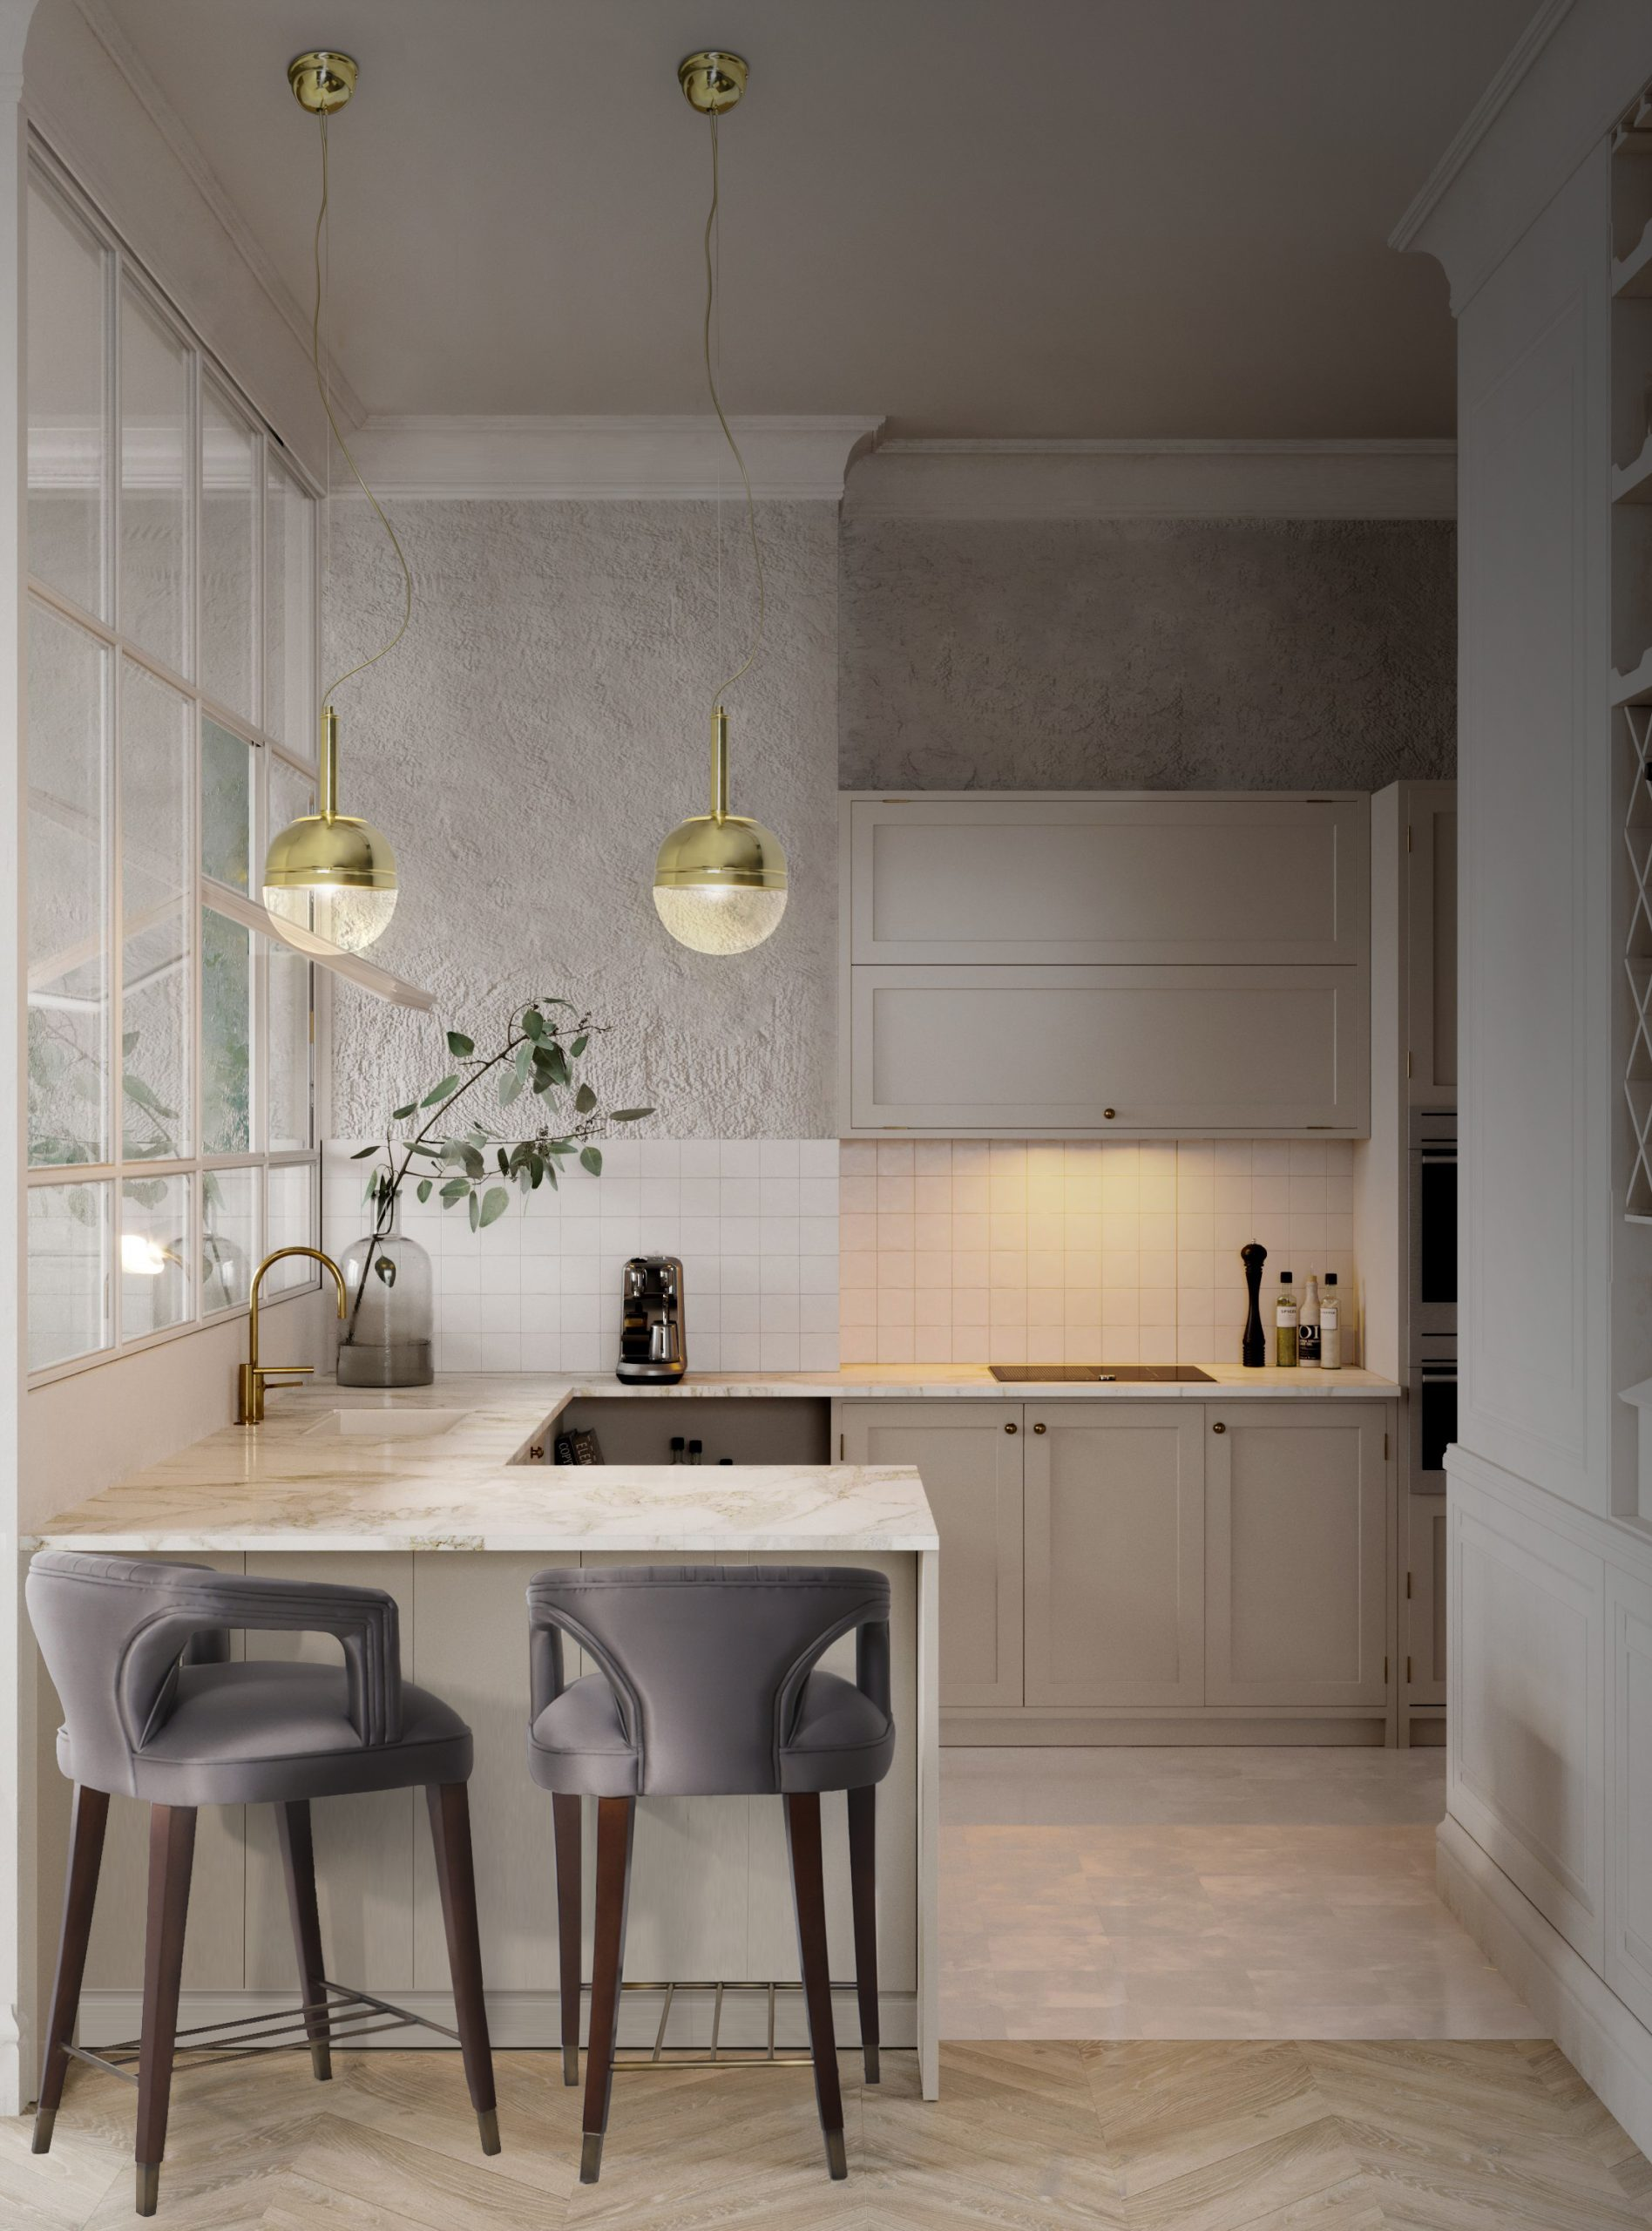 20 Counter Stools To Help You Create Your Dream Kitchen counter stools 20 Counter Stools To Help You Create Your Dream Kitchen karoo ba chair niku pendant scaled